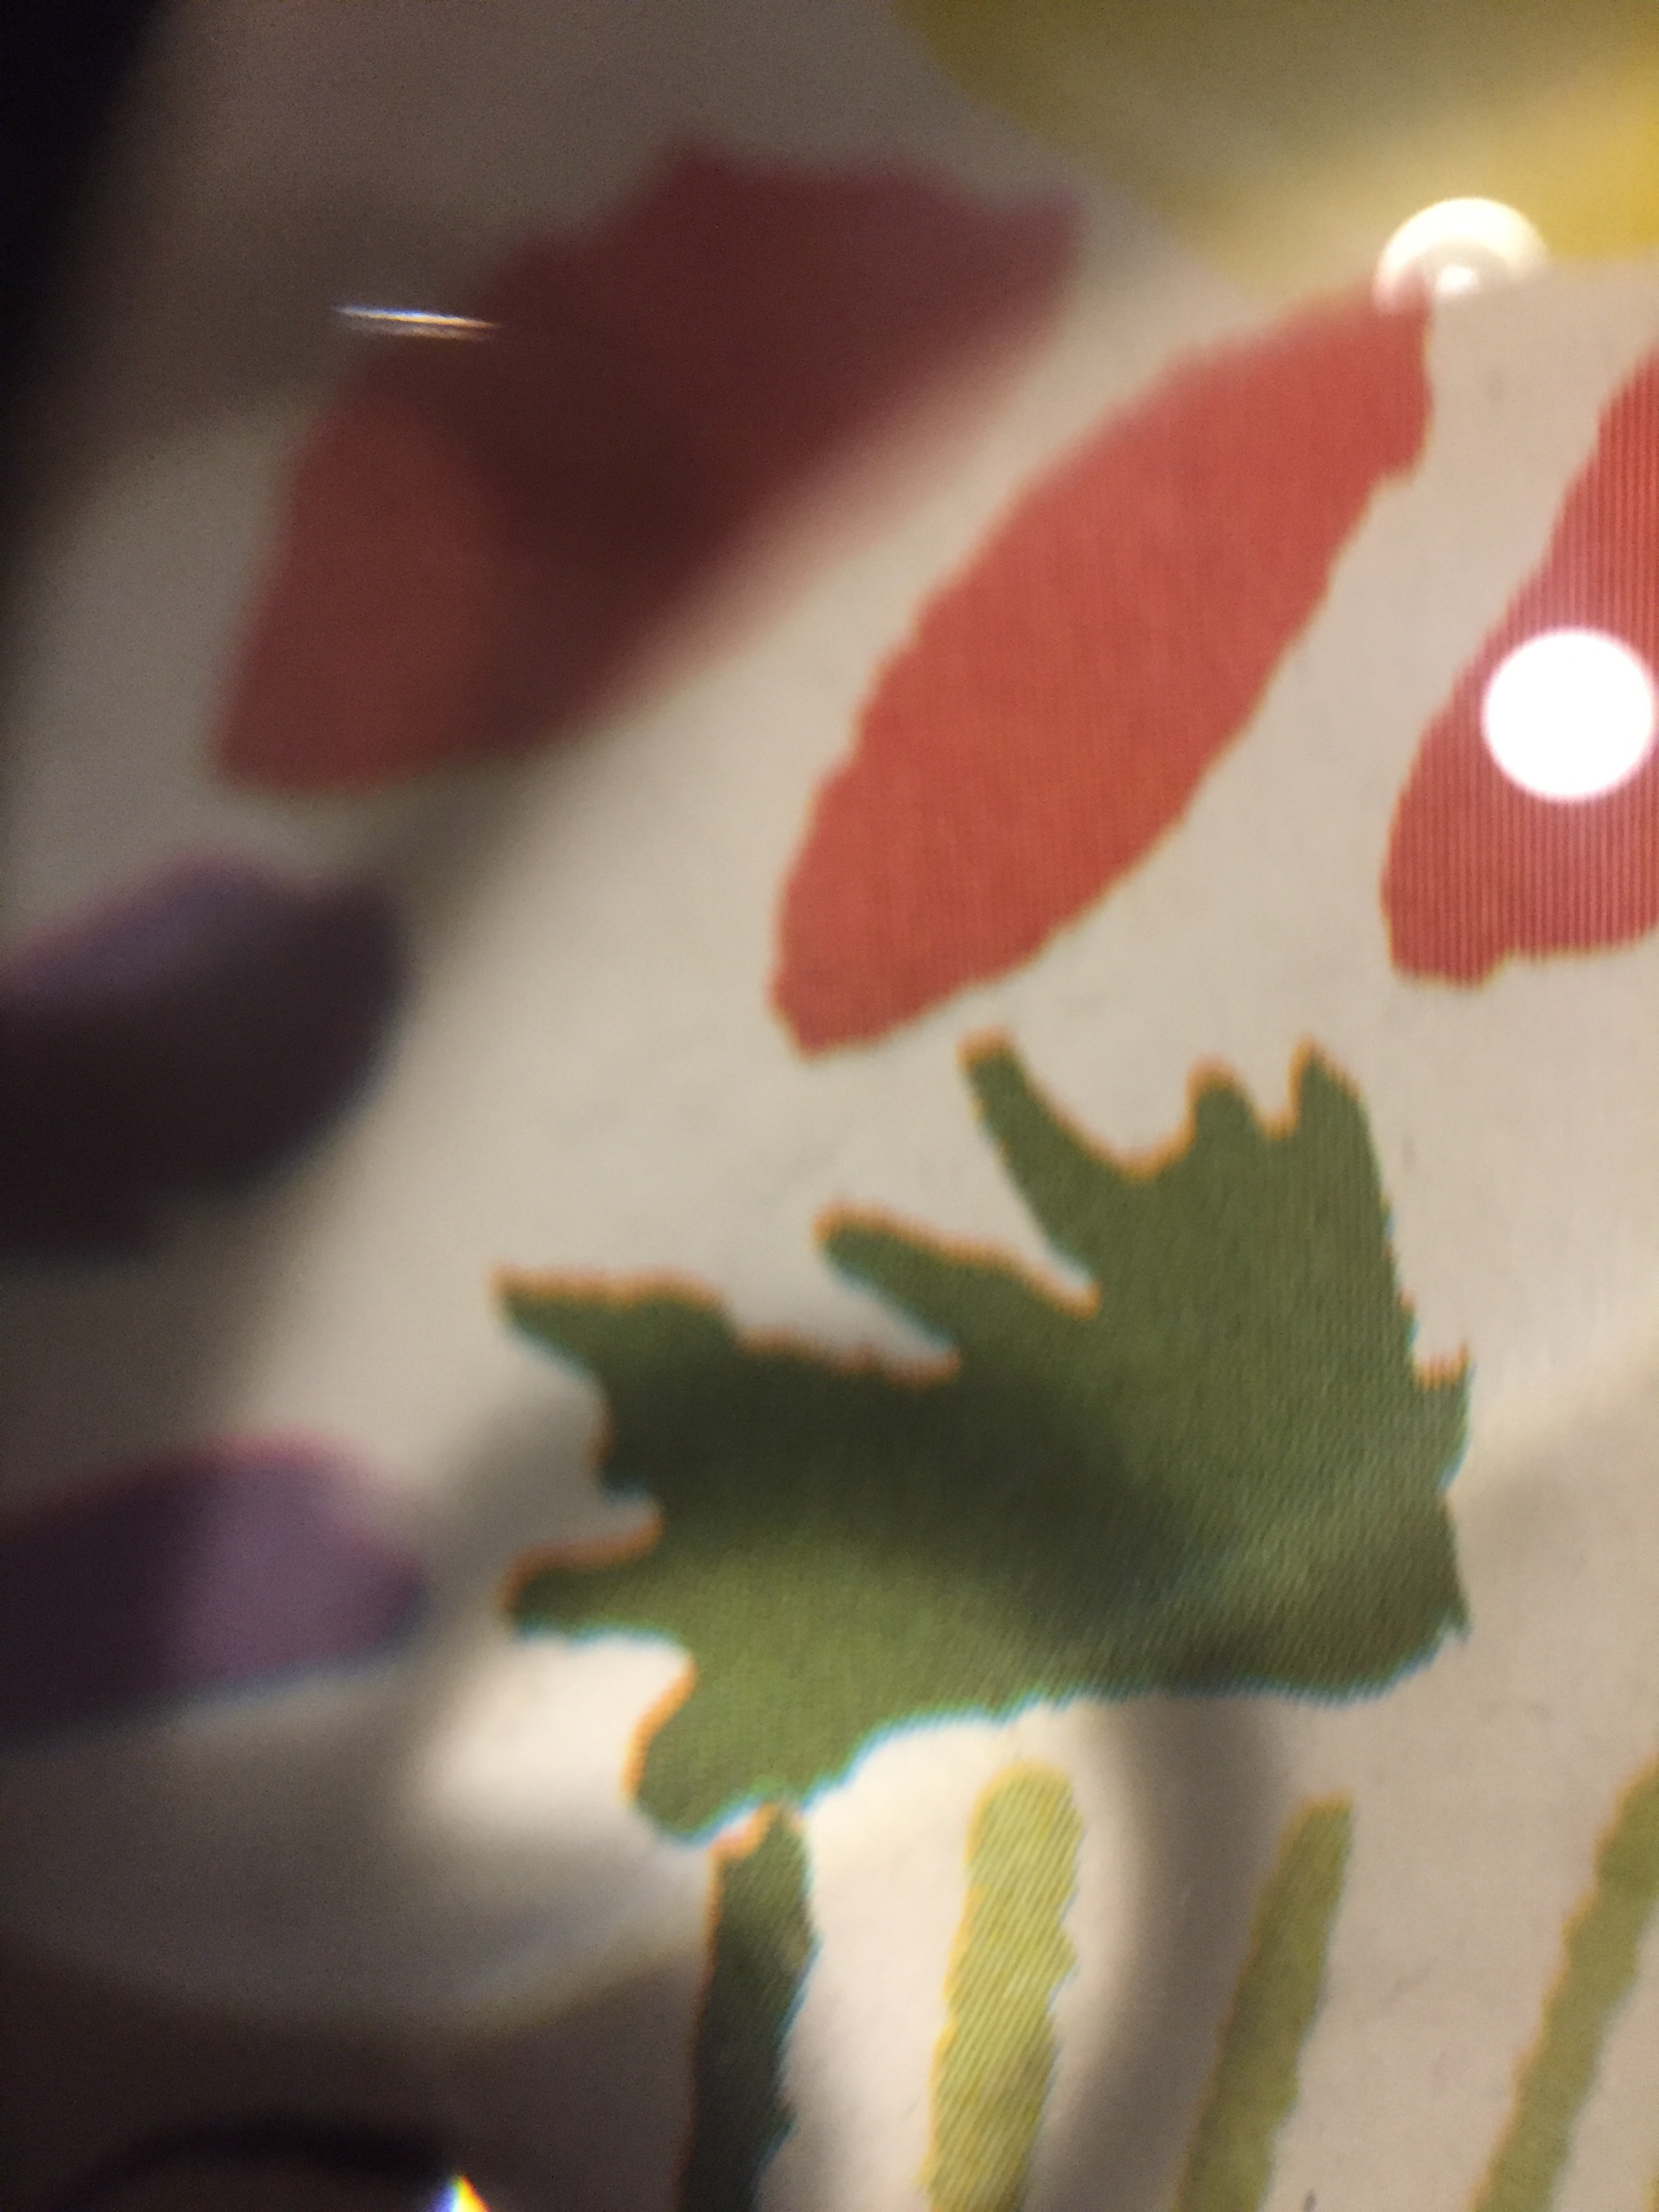 see the dots? Picasso print. The printing process creates dots which kind of vibrate when they come into focus. This pic is through my magnifying glass.